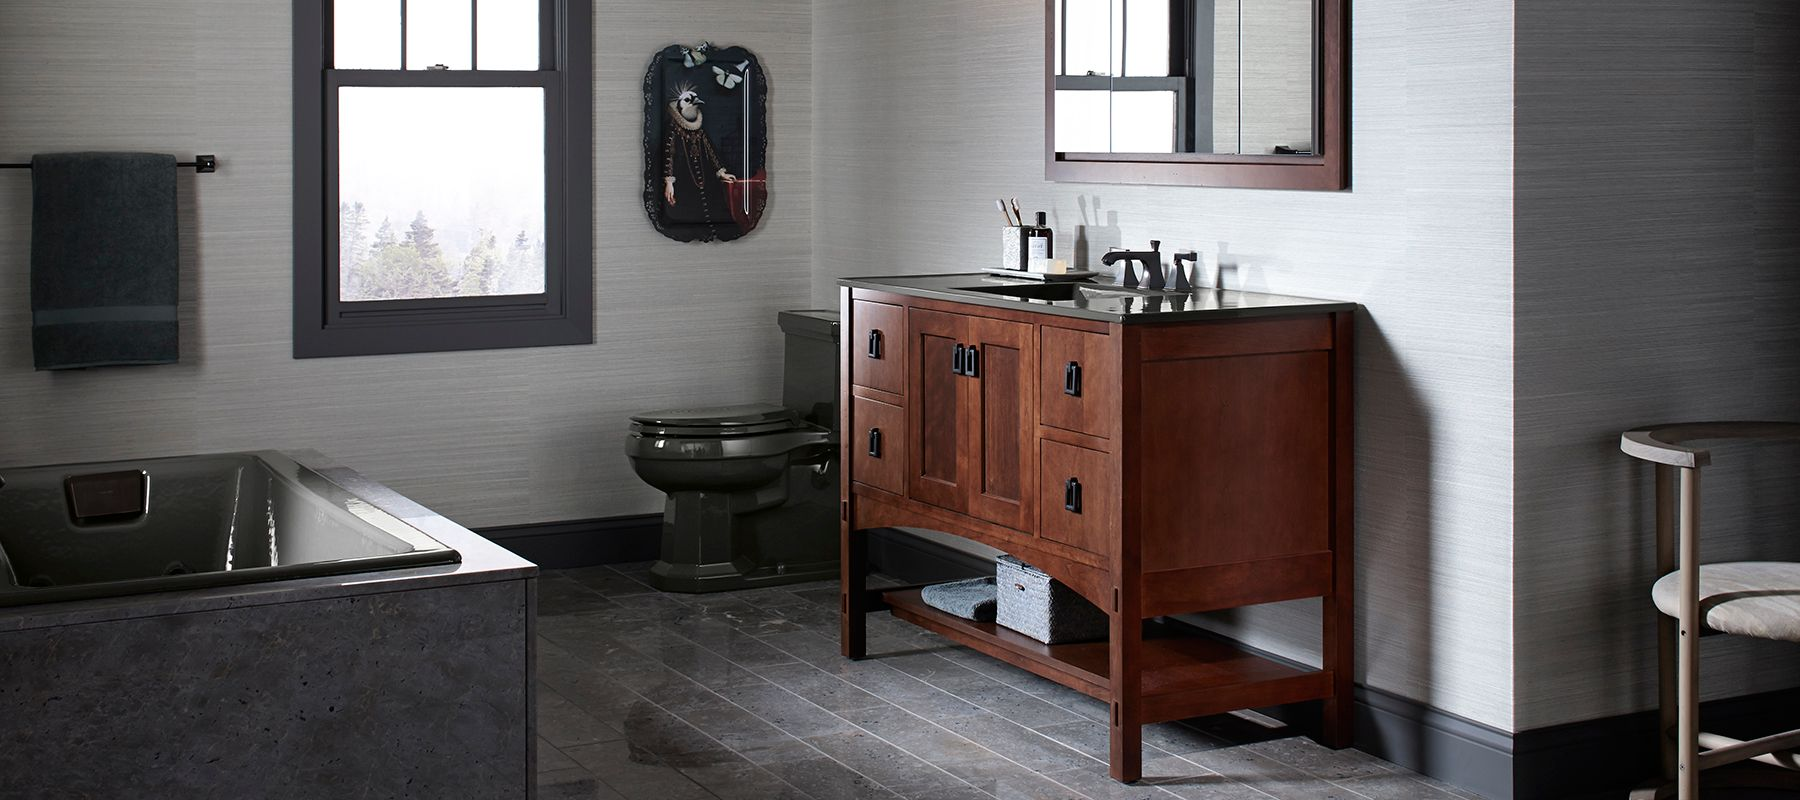 Vanities Bathroom Vanity Top Bathroom Sinks Bathroom Kohler